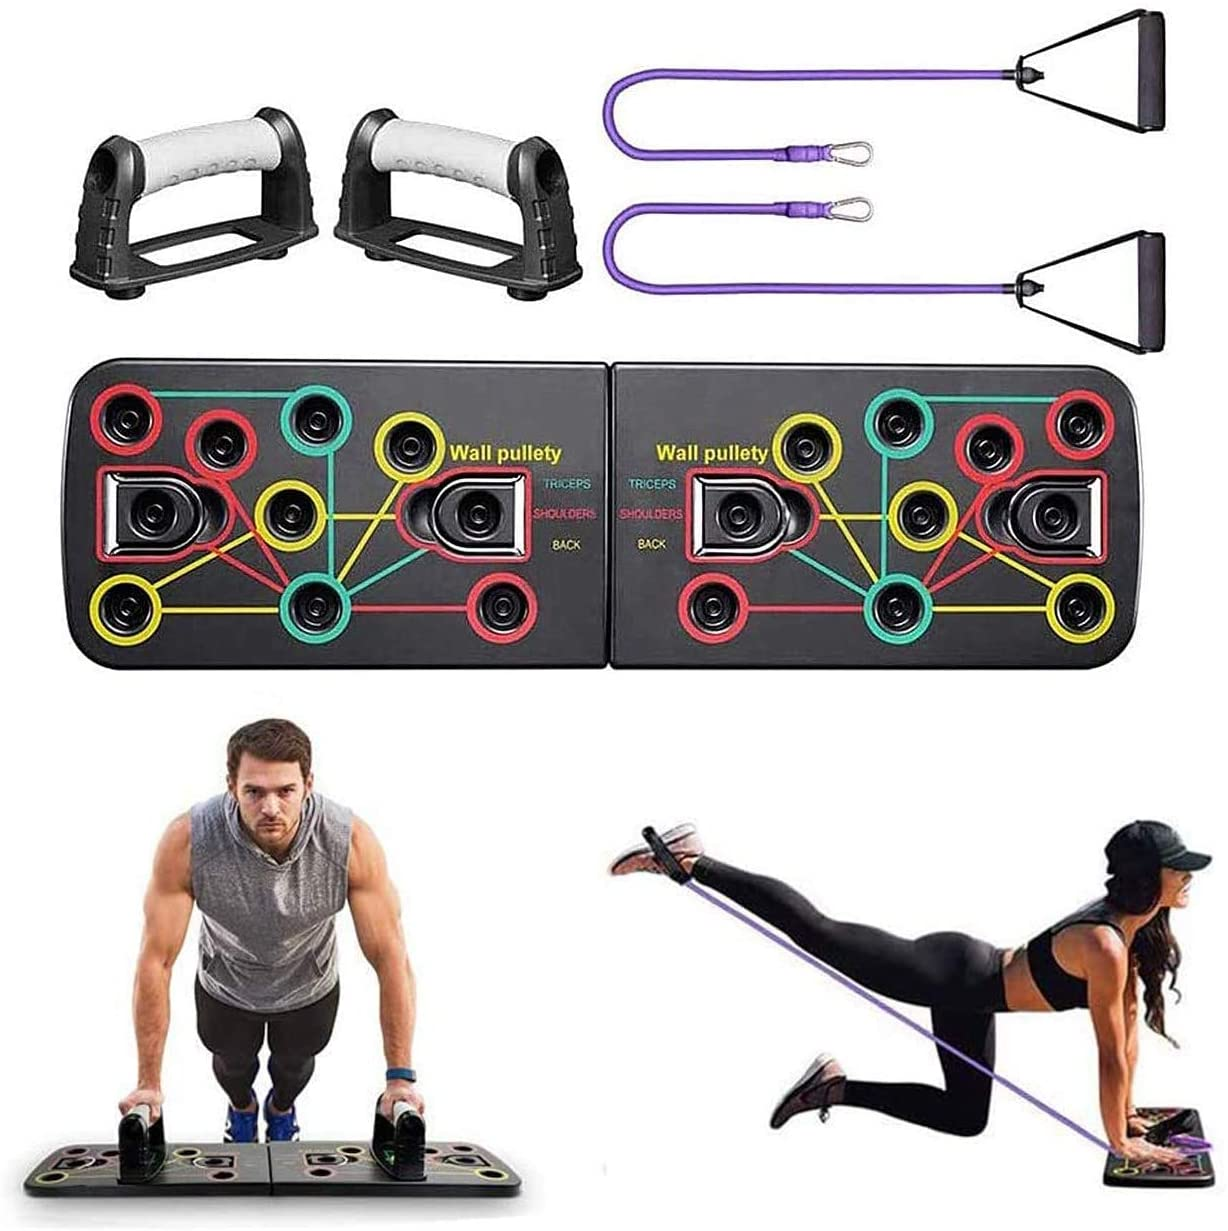 18 in 1 Push-up Board Stand Fitness Workout Gym Chest Muscle Training Exercise